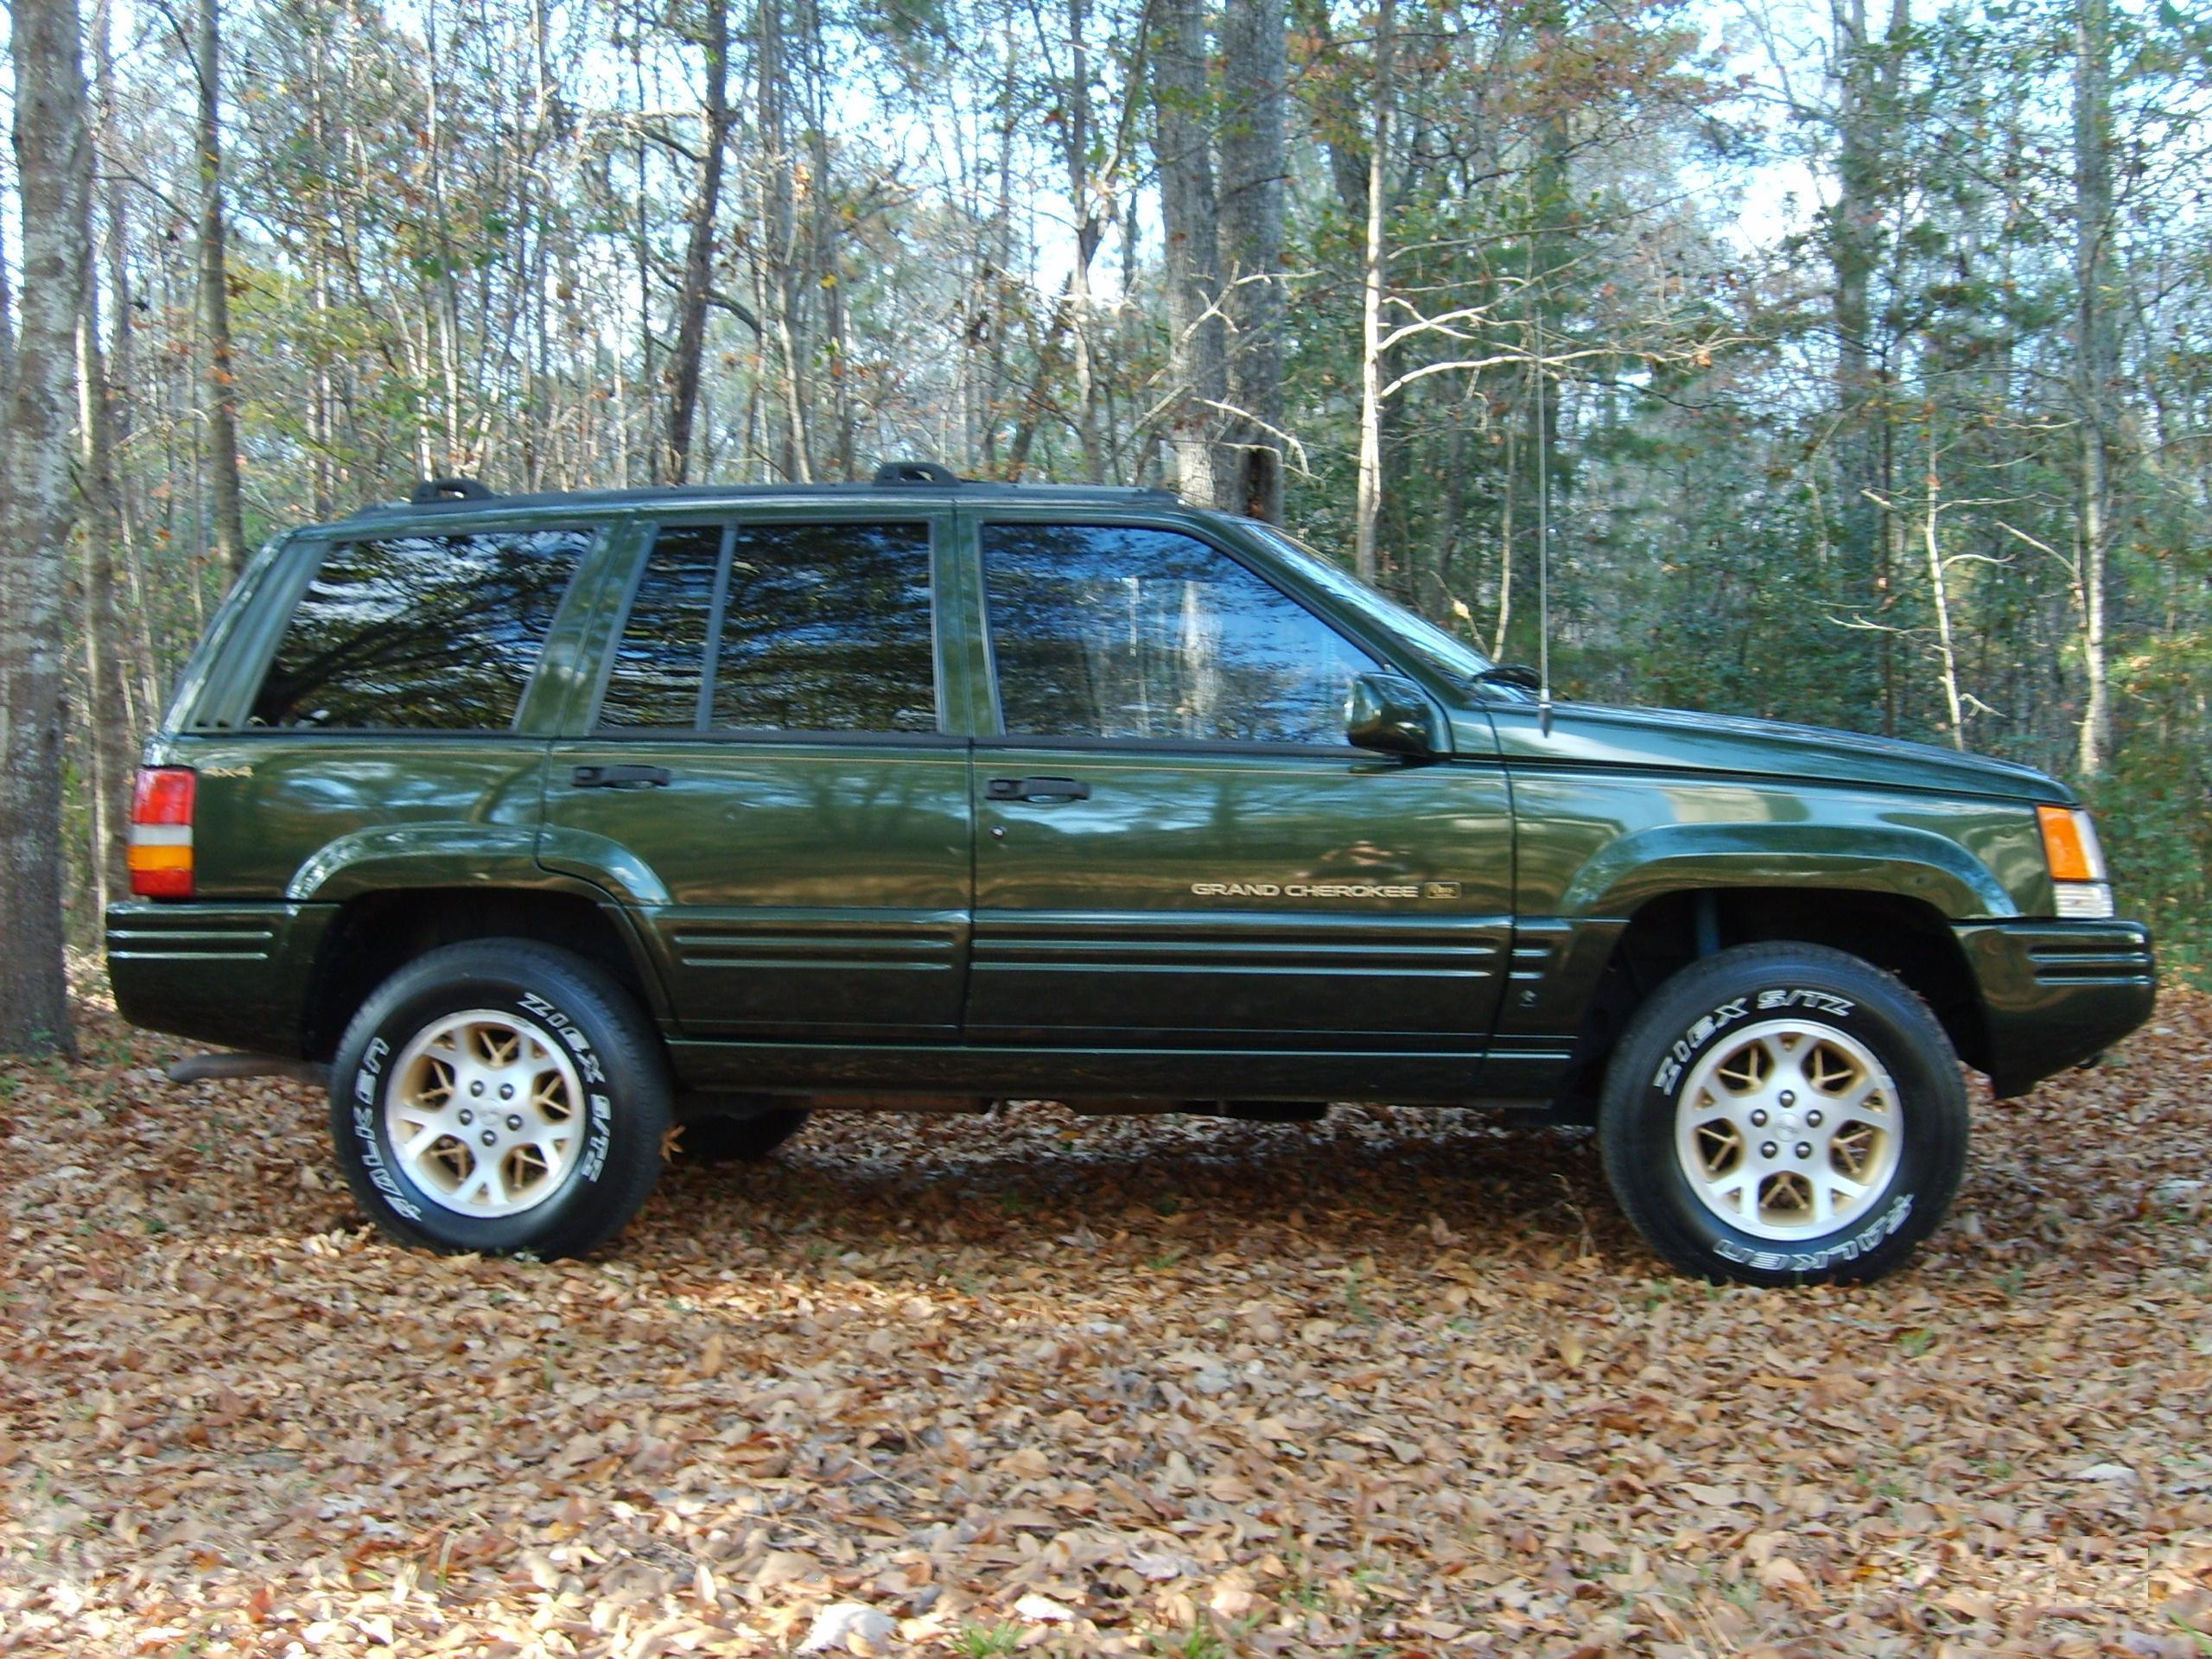 Elegant 1997 Jeep Grand Cherokee #6 Jeep Grand Cherokee #6